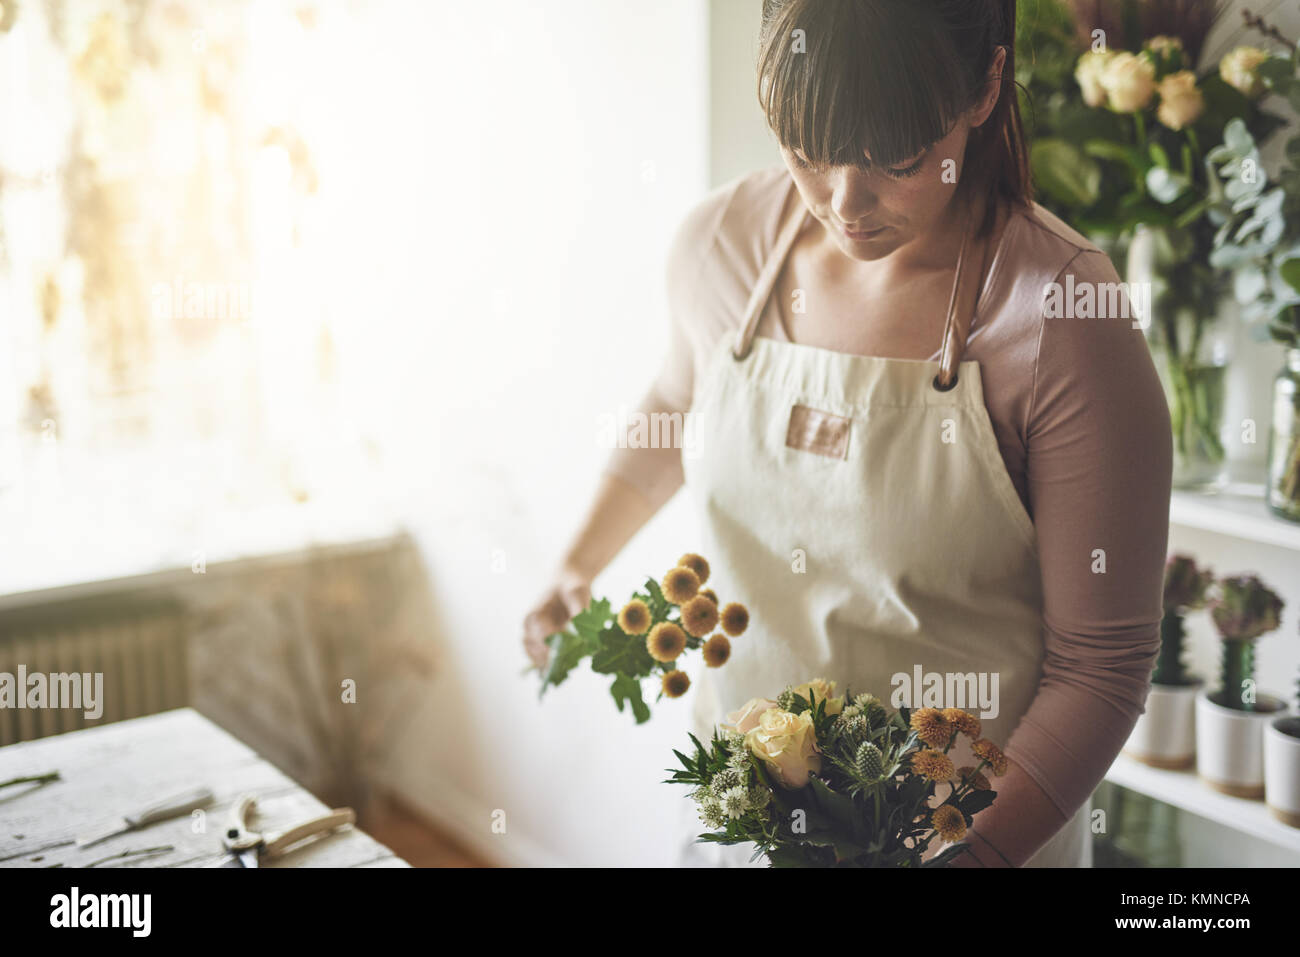 Young female florist working alone at a table in her flower shop making a mixed flower arrangement - Stock Image